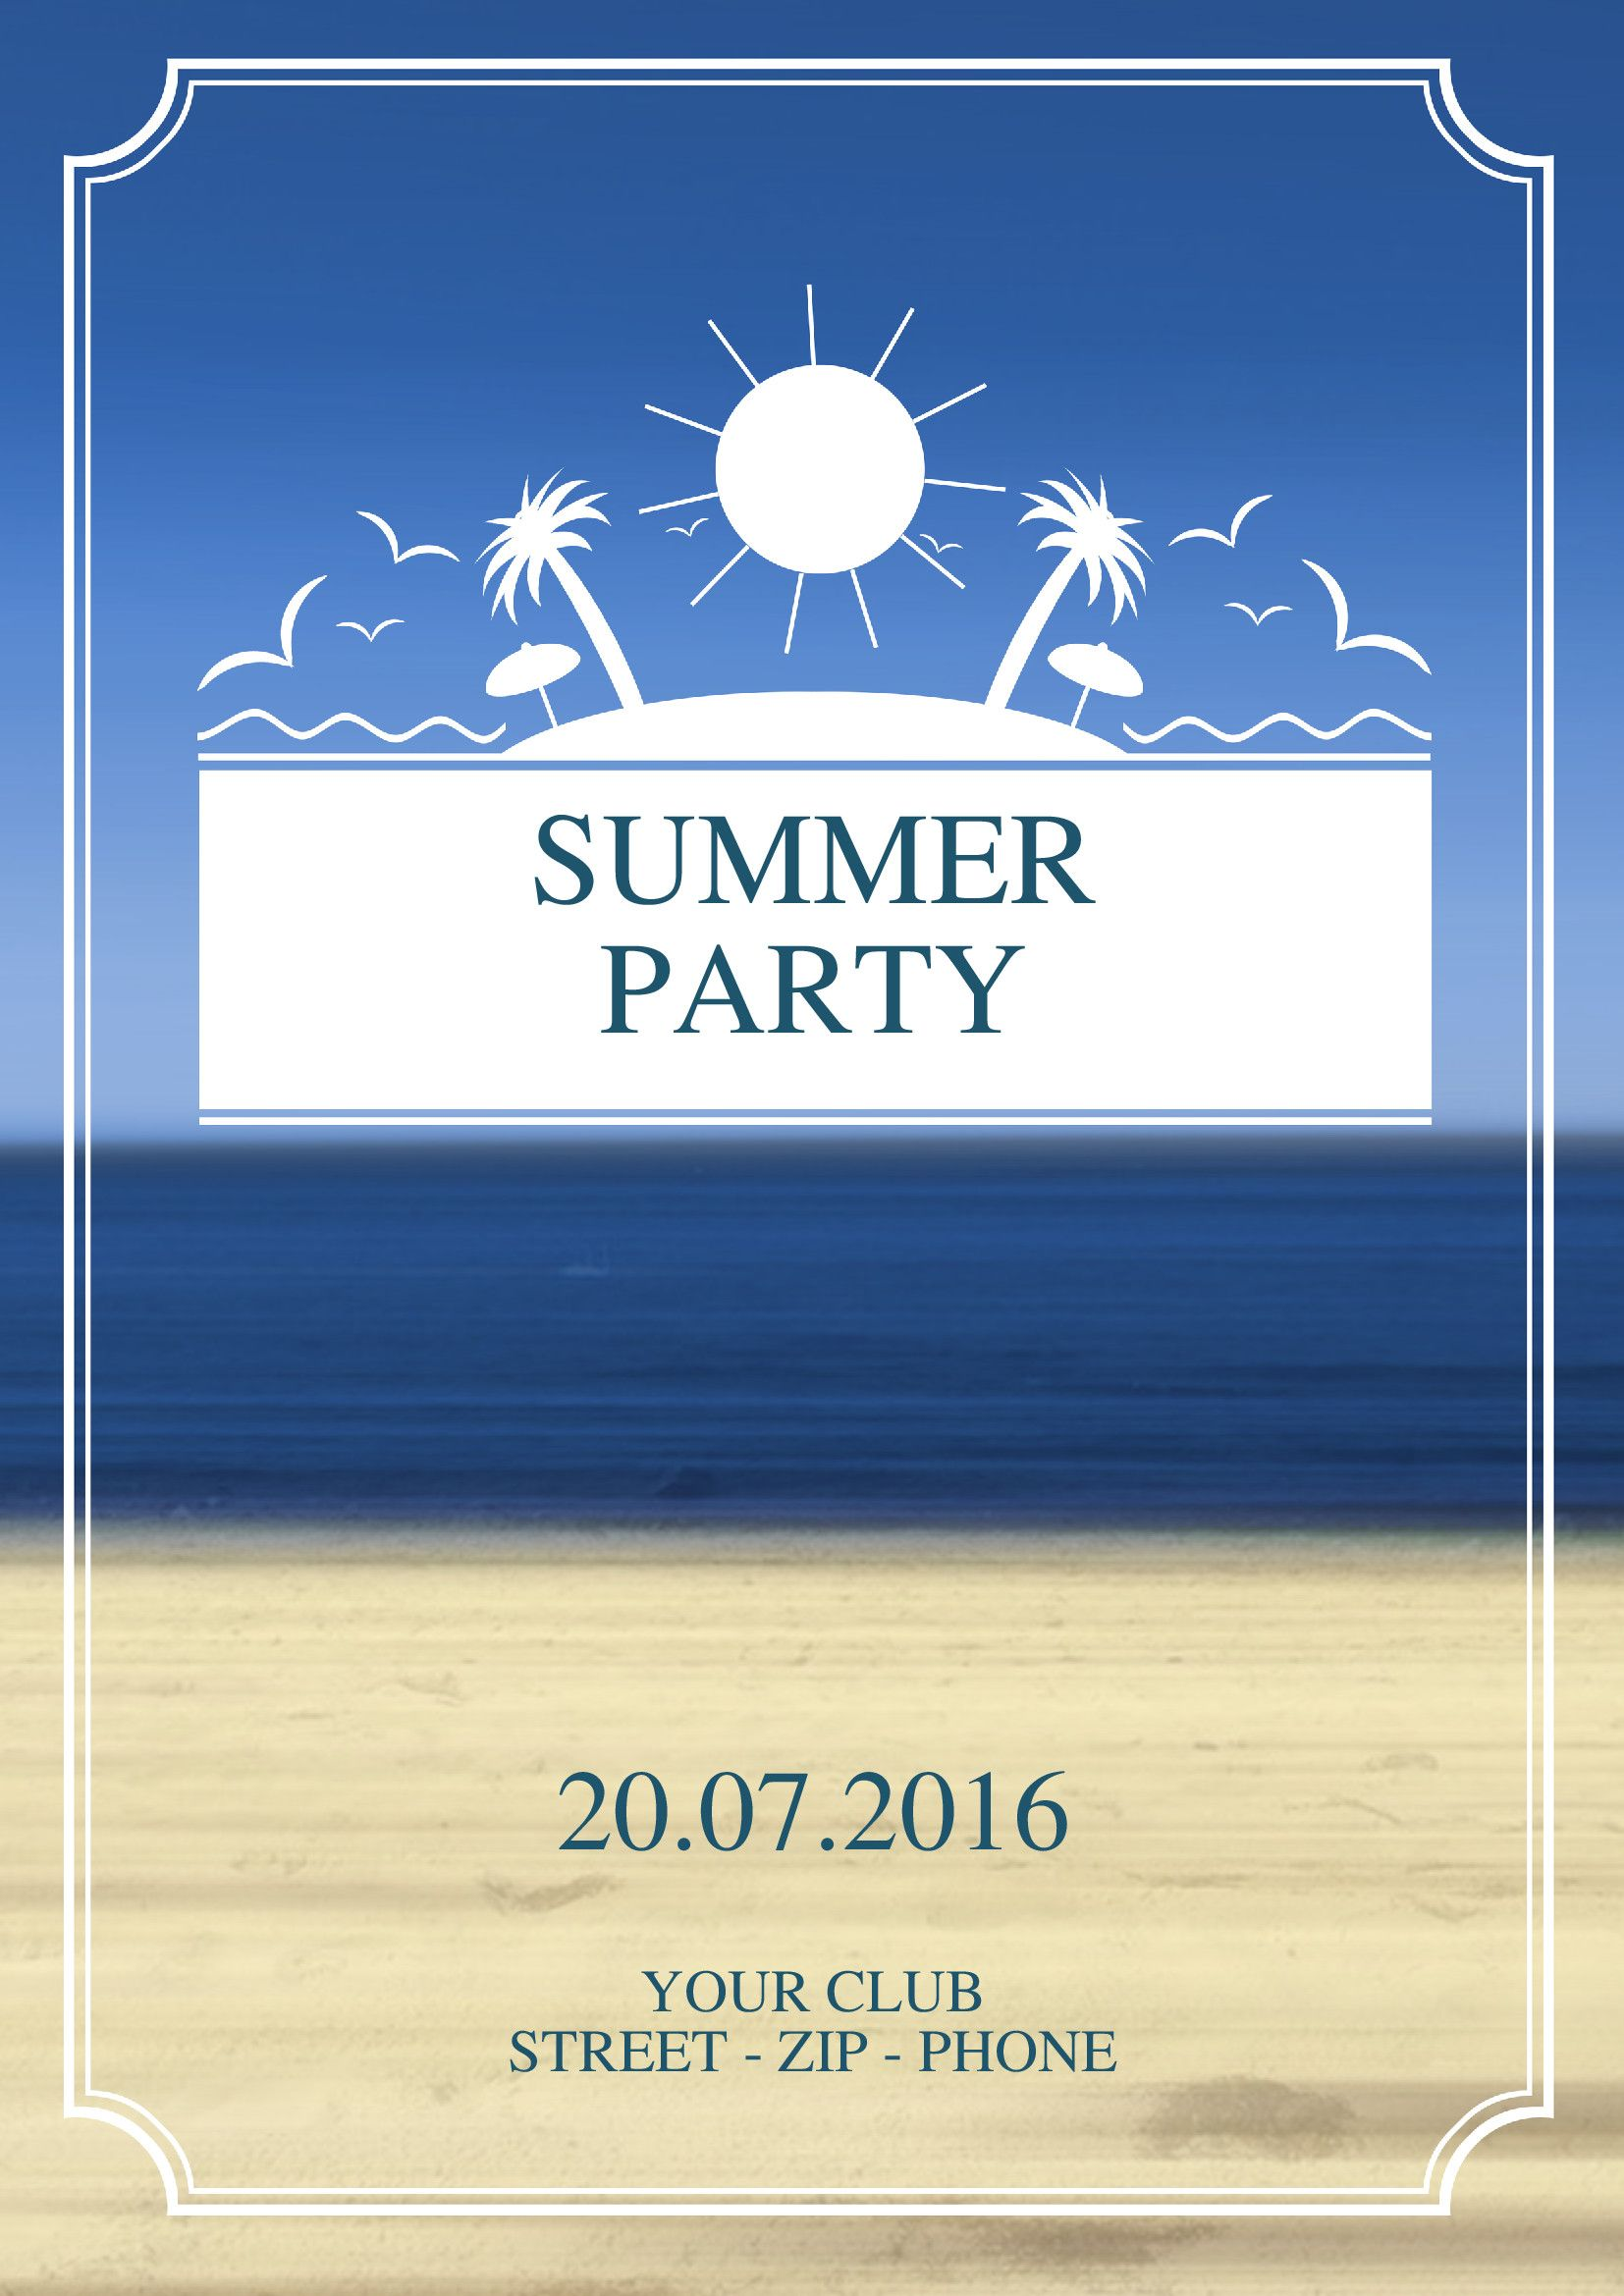 Use this fun, colorful invitation / flyer design for any Summer Party, Beach Party, Pool party, Spring Party or Cookout.